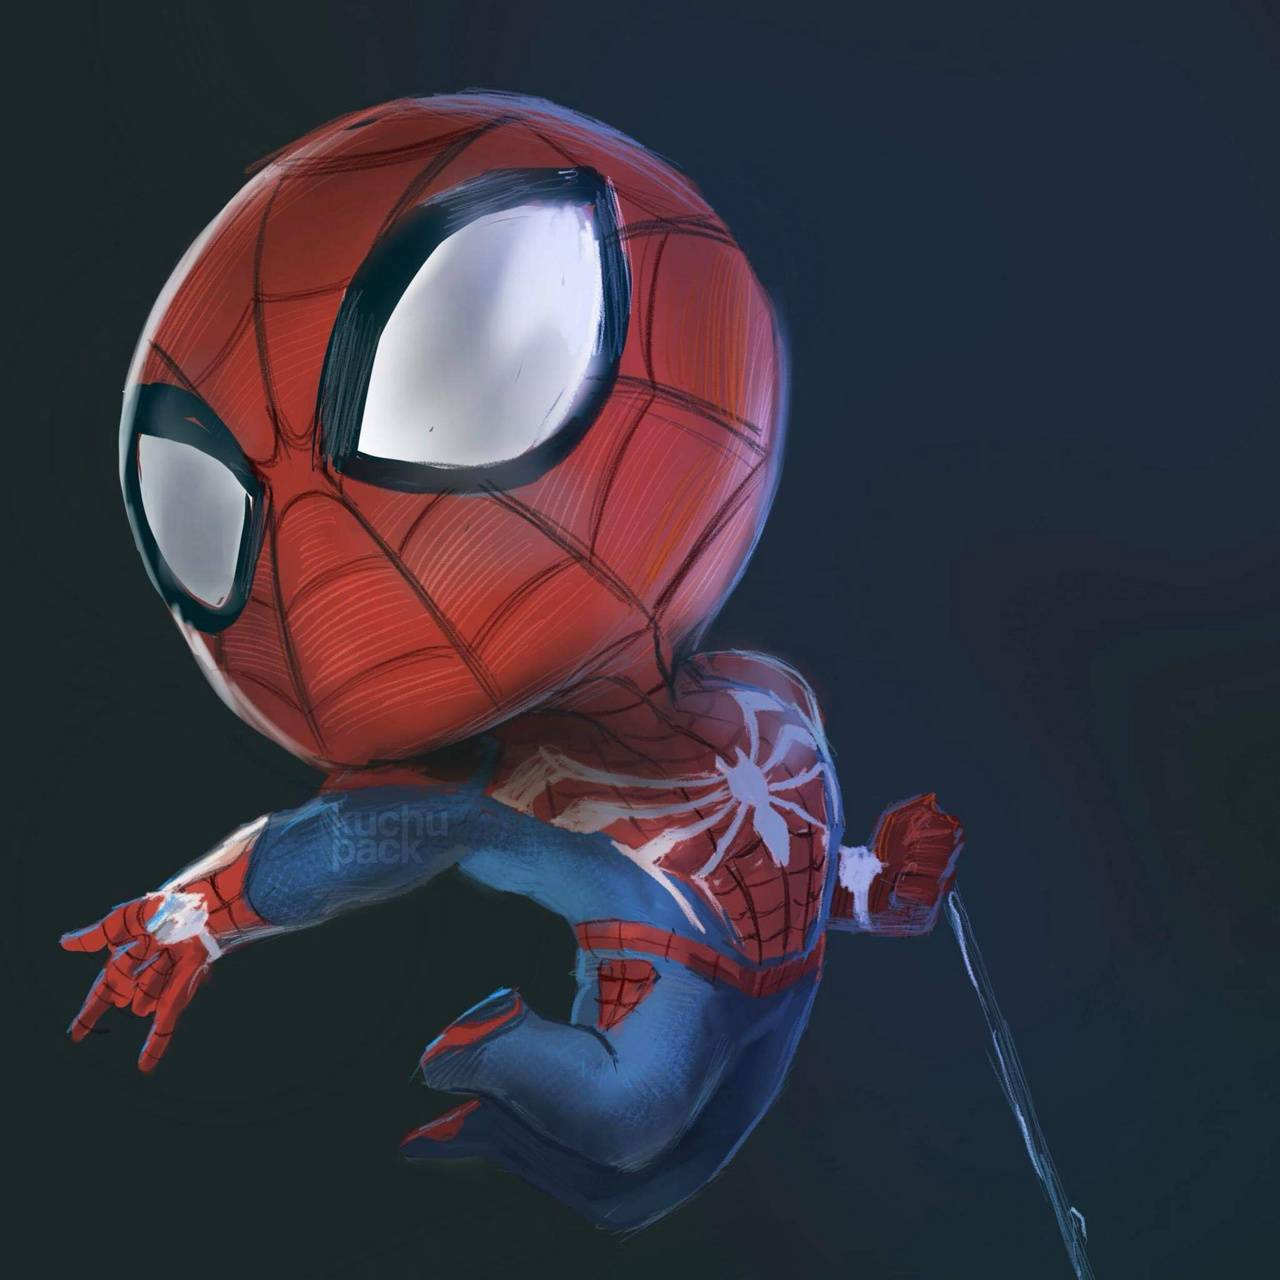 Chibi Spiderman Wallpapers - Top Free Chibi Spiderman ...